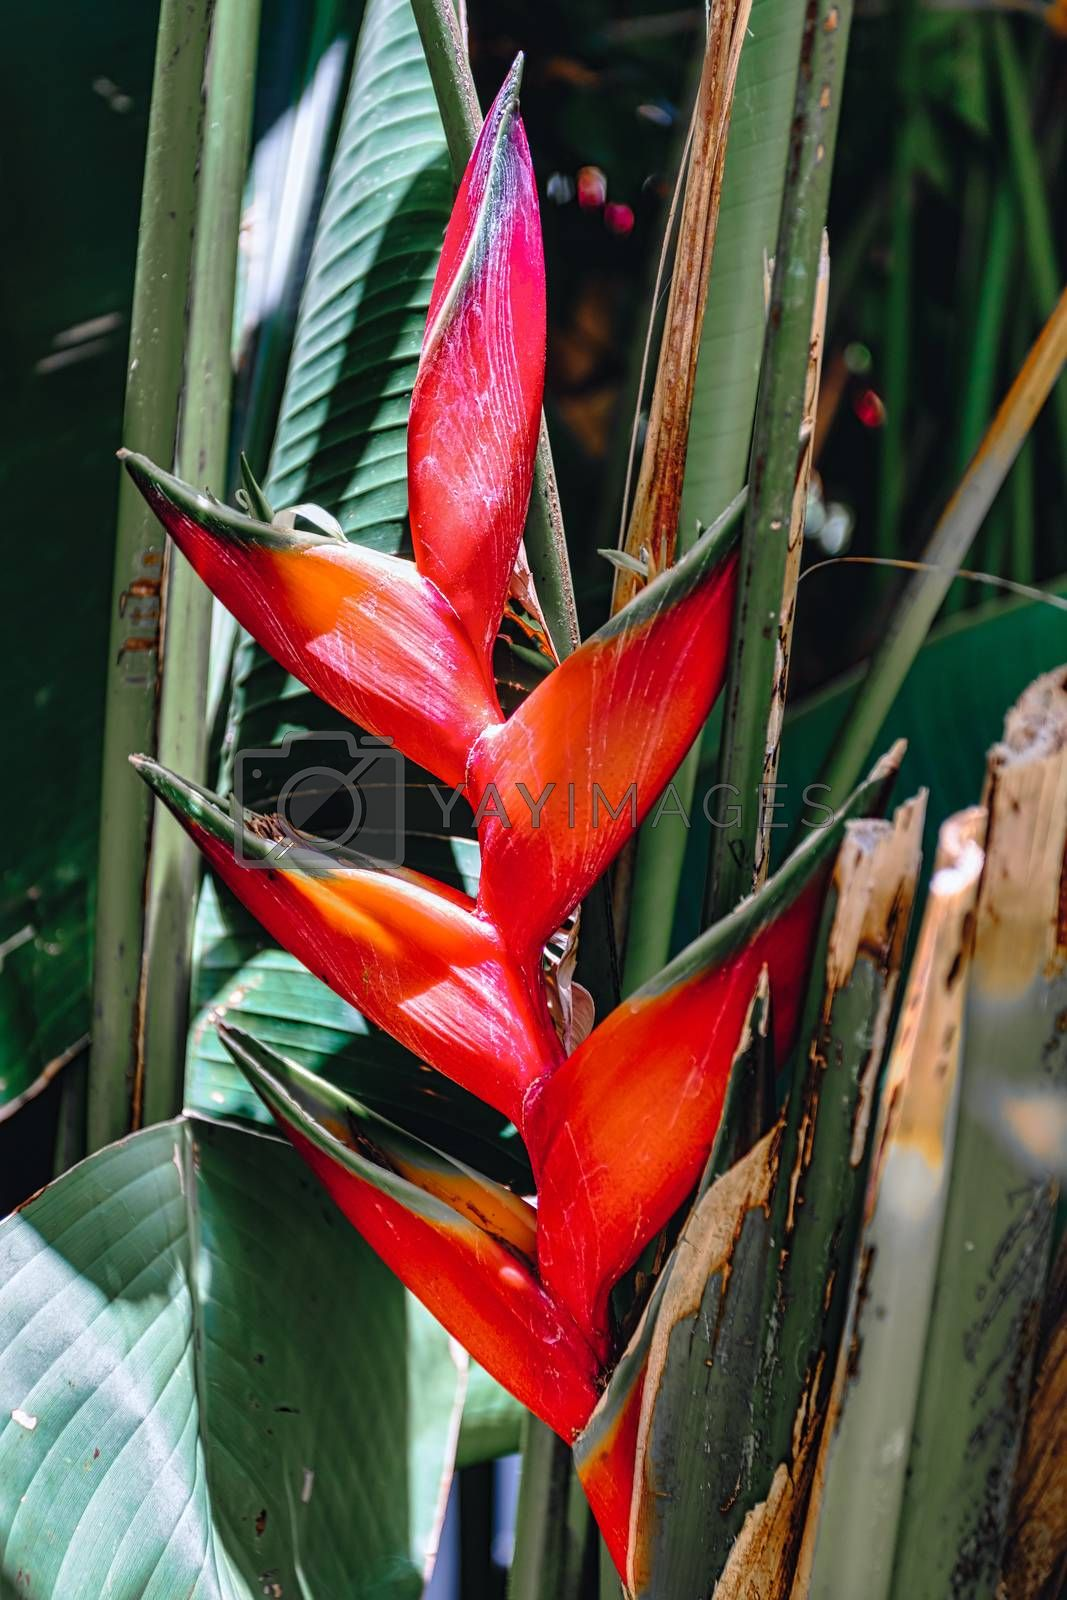 beautiful red Heliconia, flowering plants in the monotypic family Heliconiaceae. Ethiopia wilderness